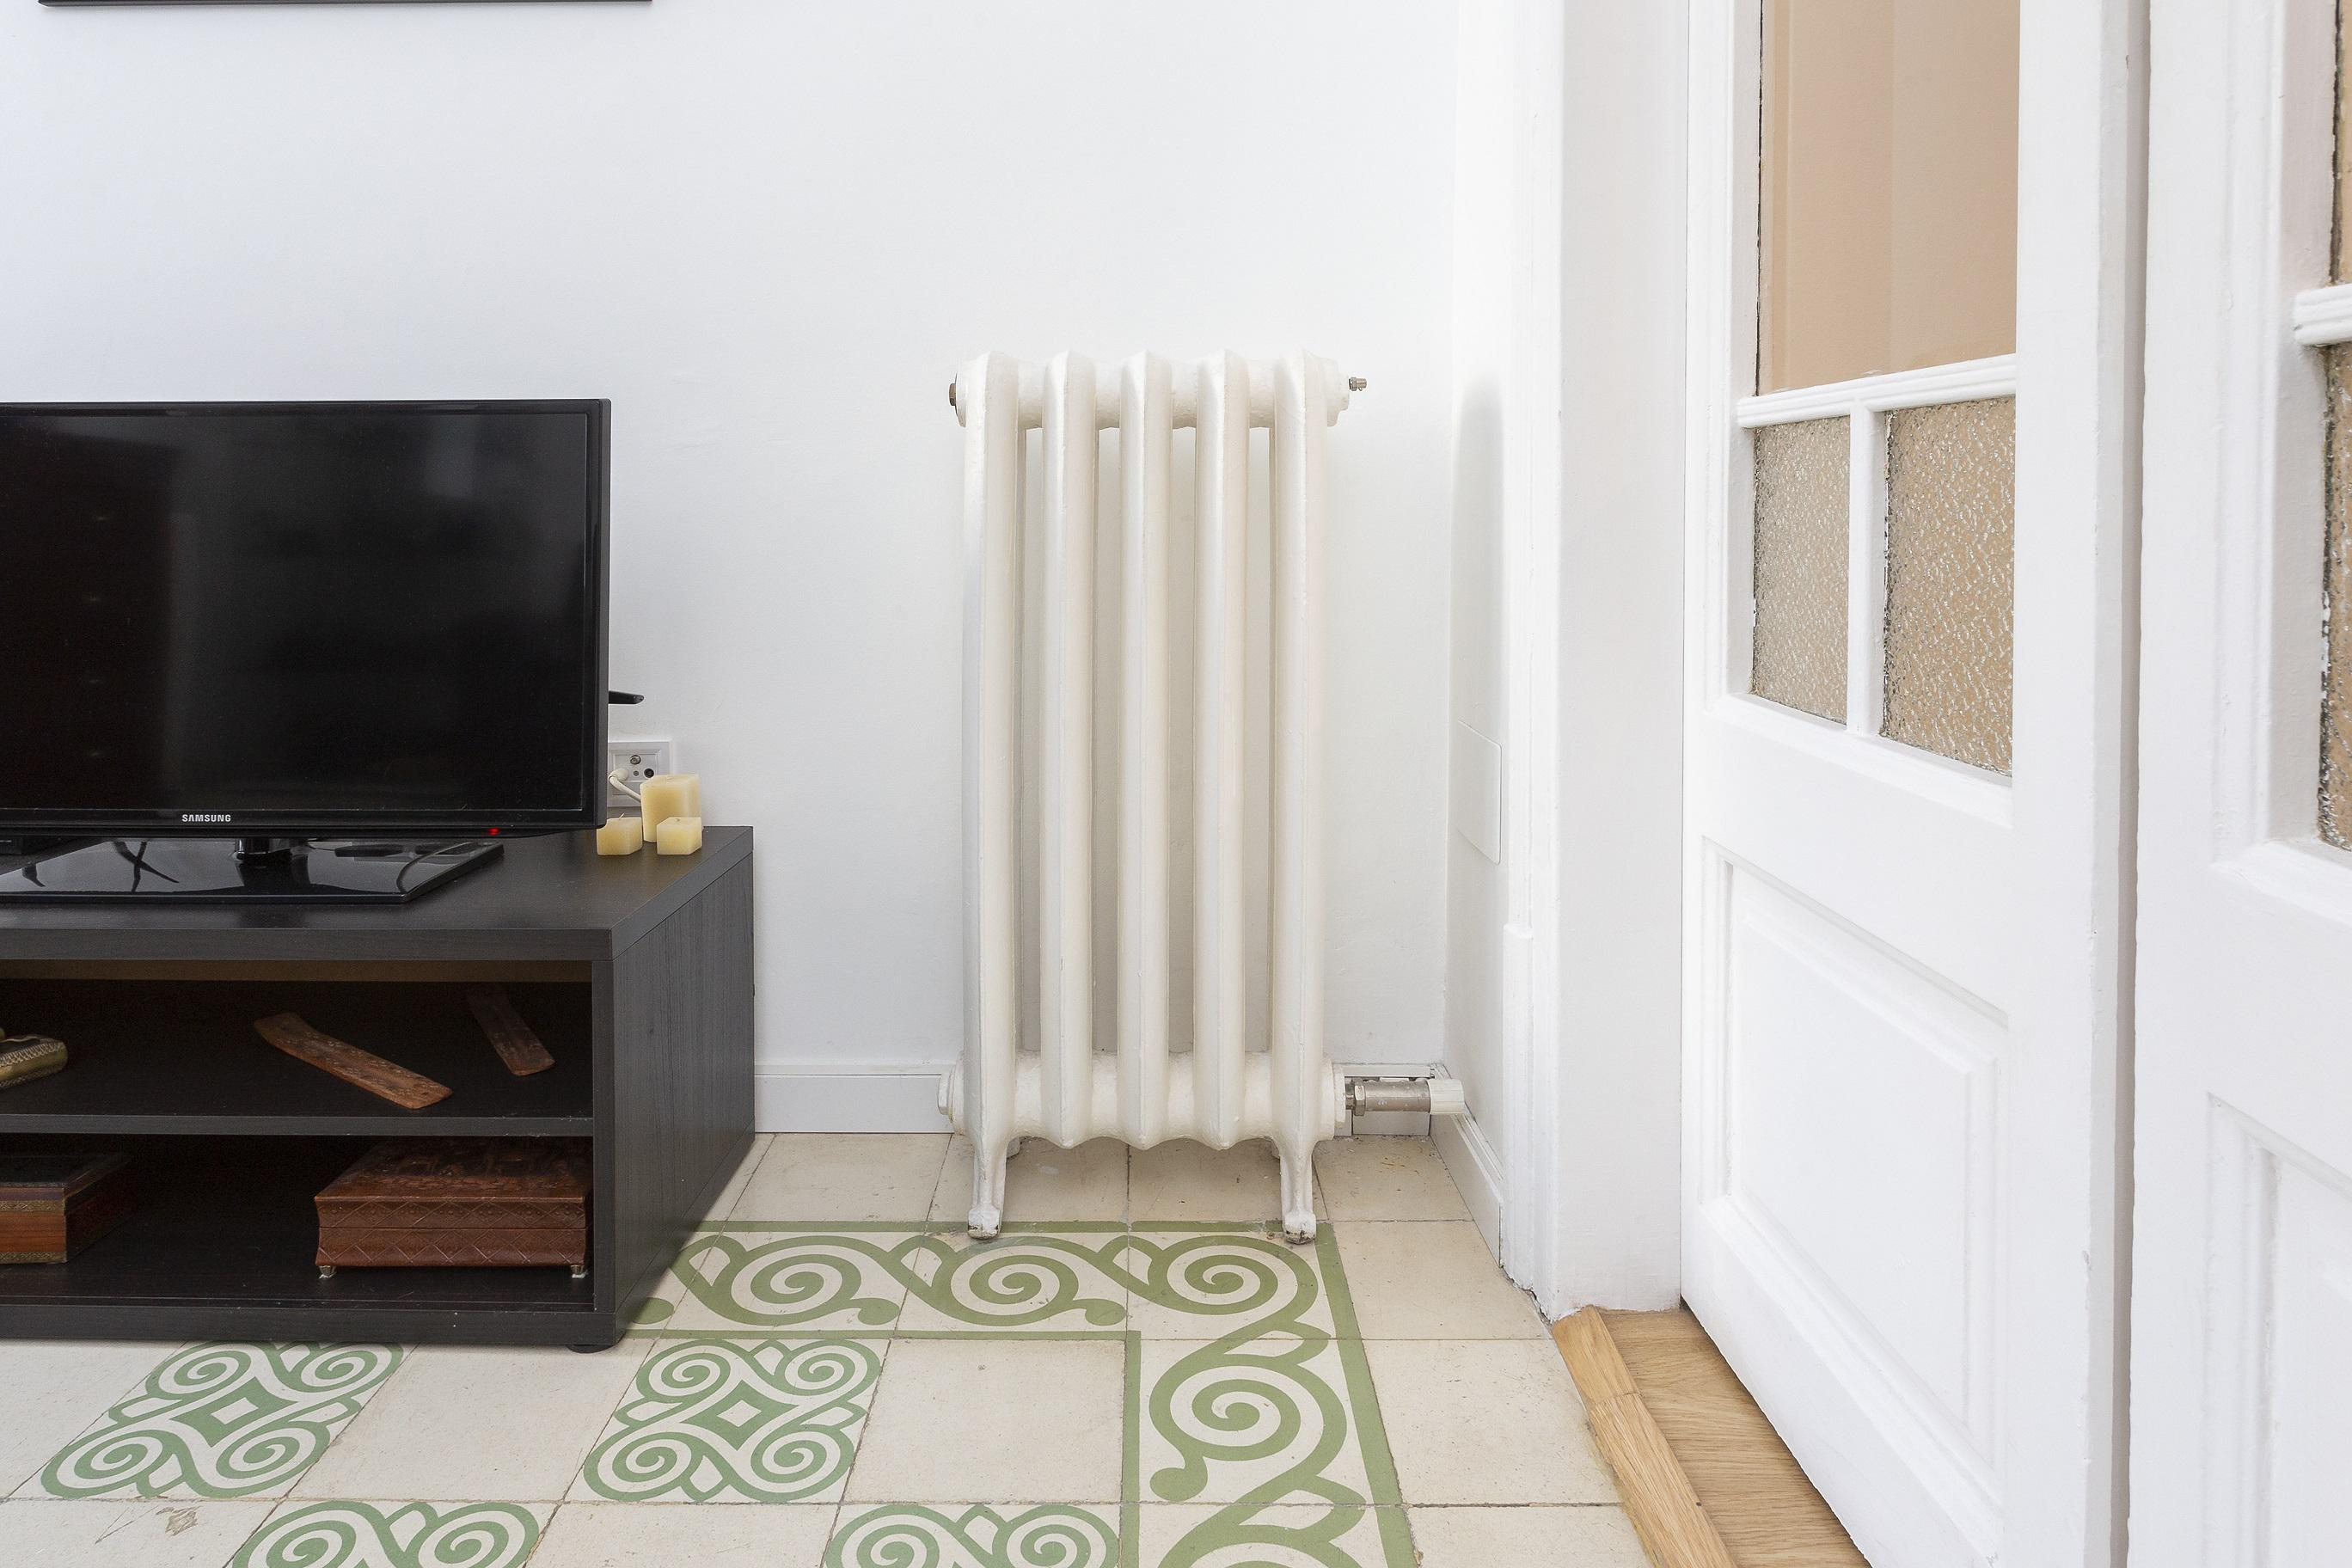 236190 Apartment for sale in Eixample, Old Left Eixample 6